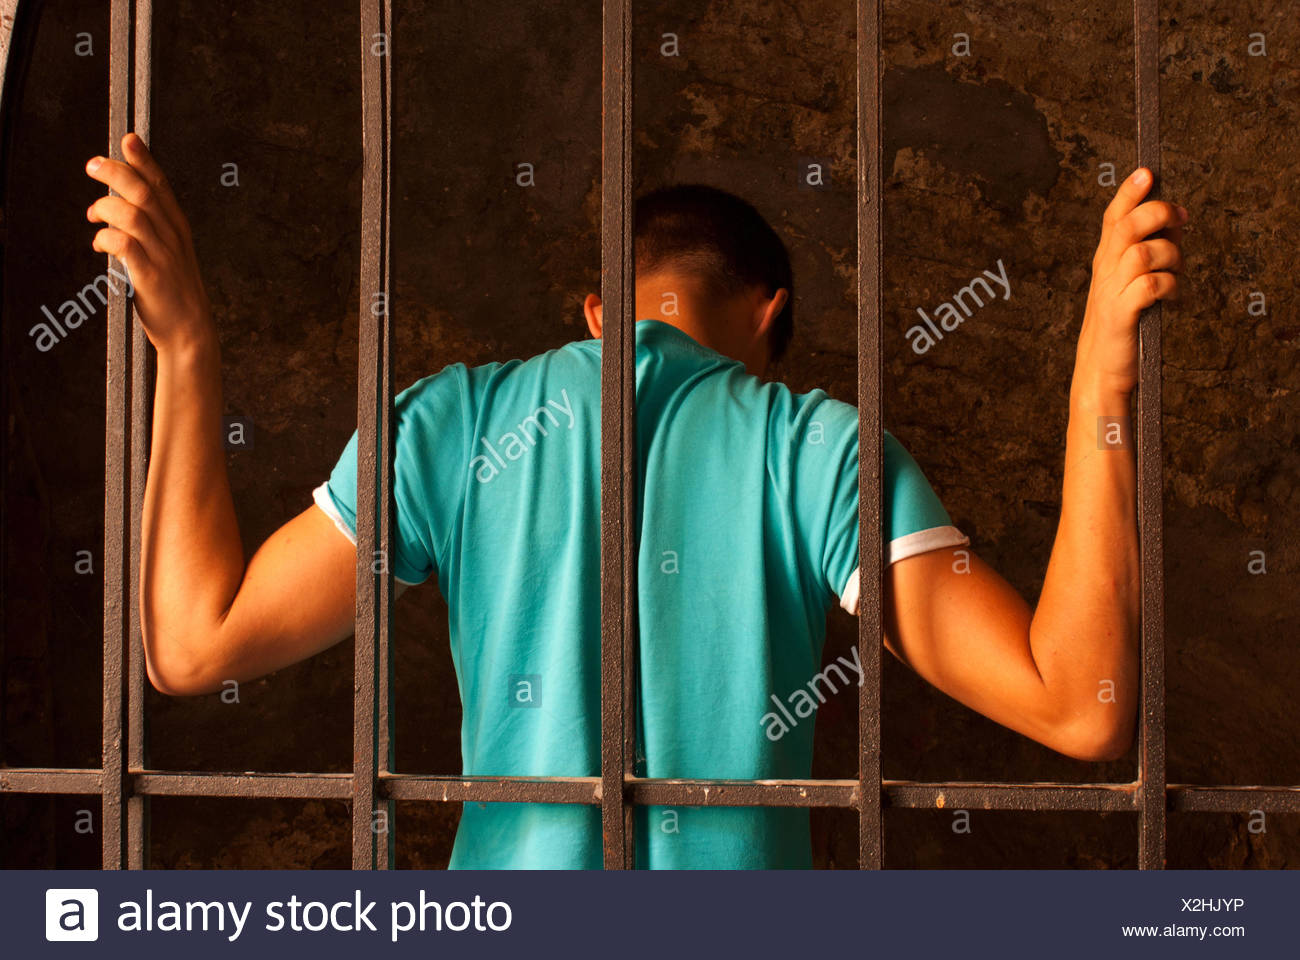 Man with hands tied with rope behind the bars - Stock Image